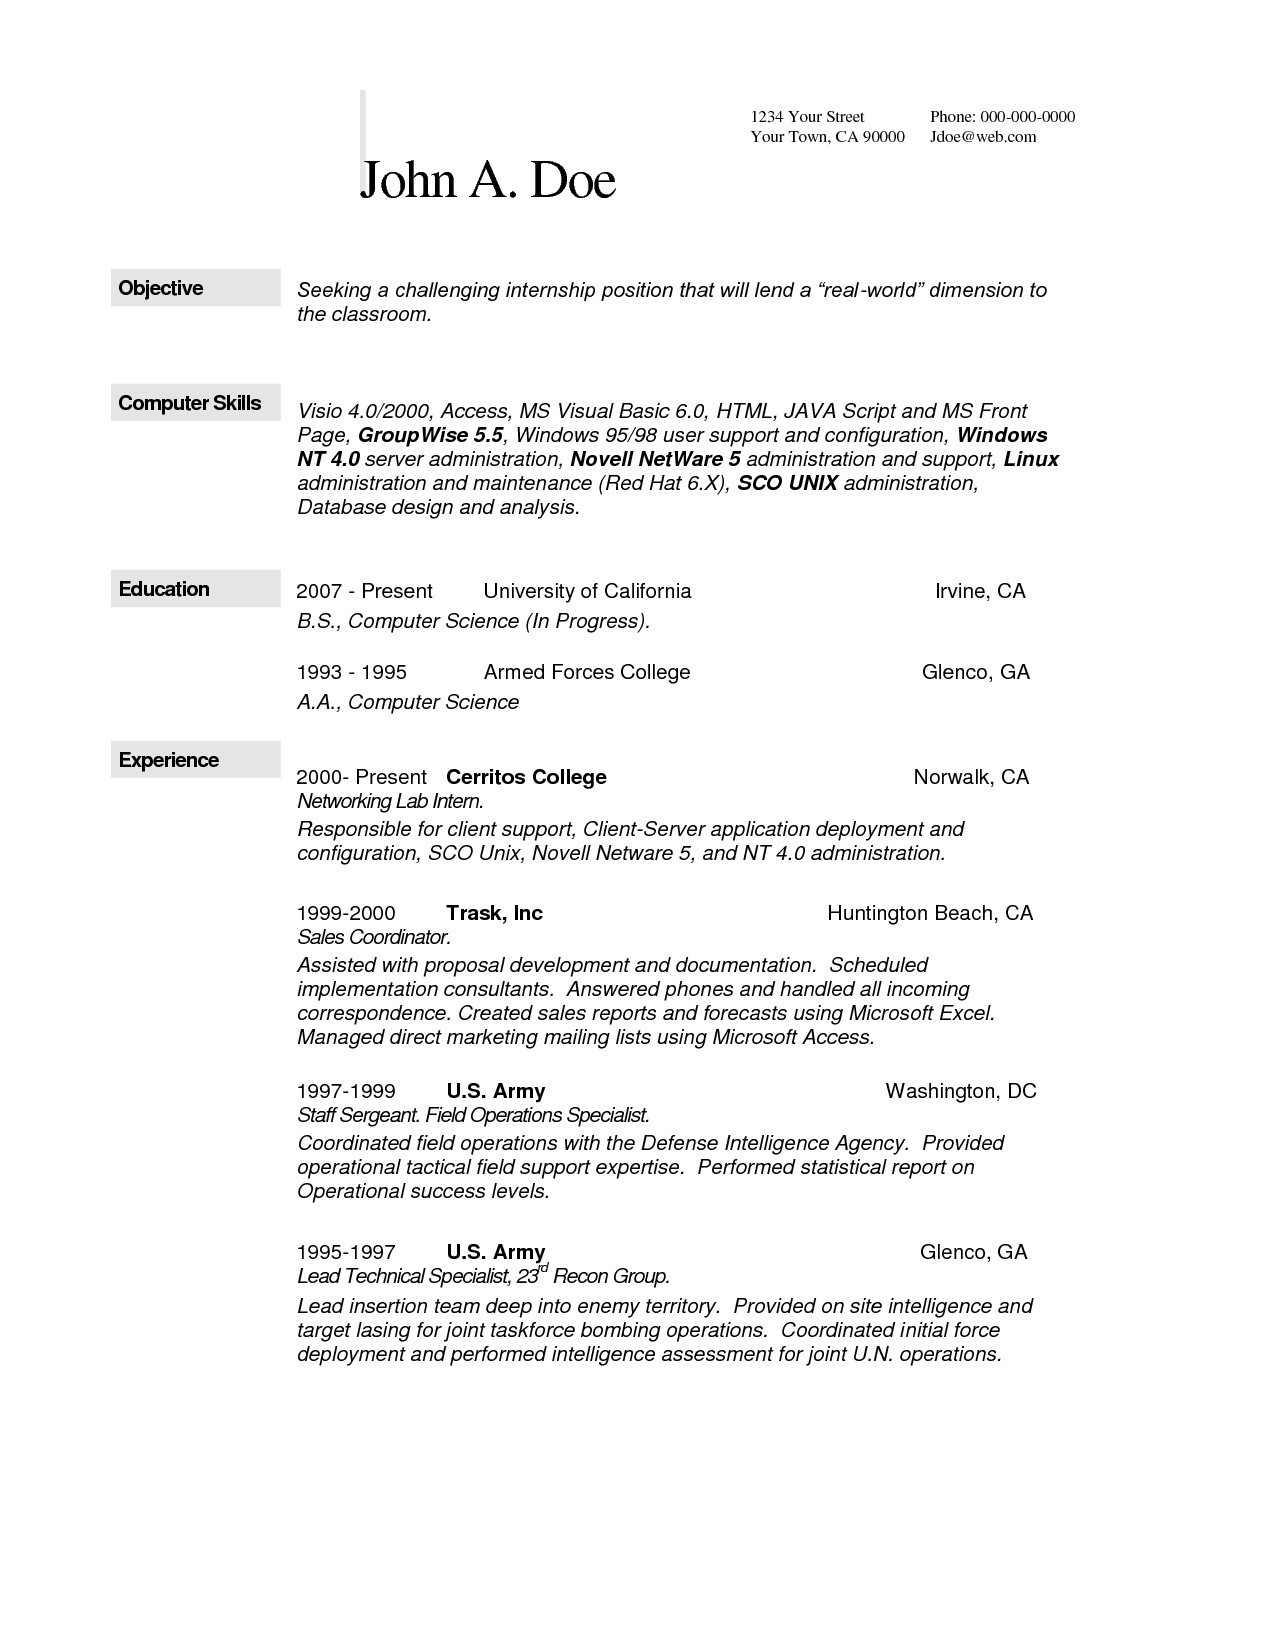 Resume Template Computer Science - Awesome Omputer Science Resume Example